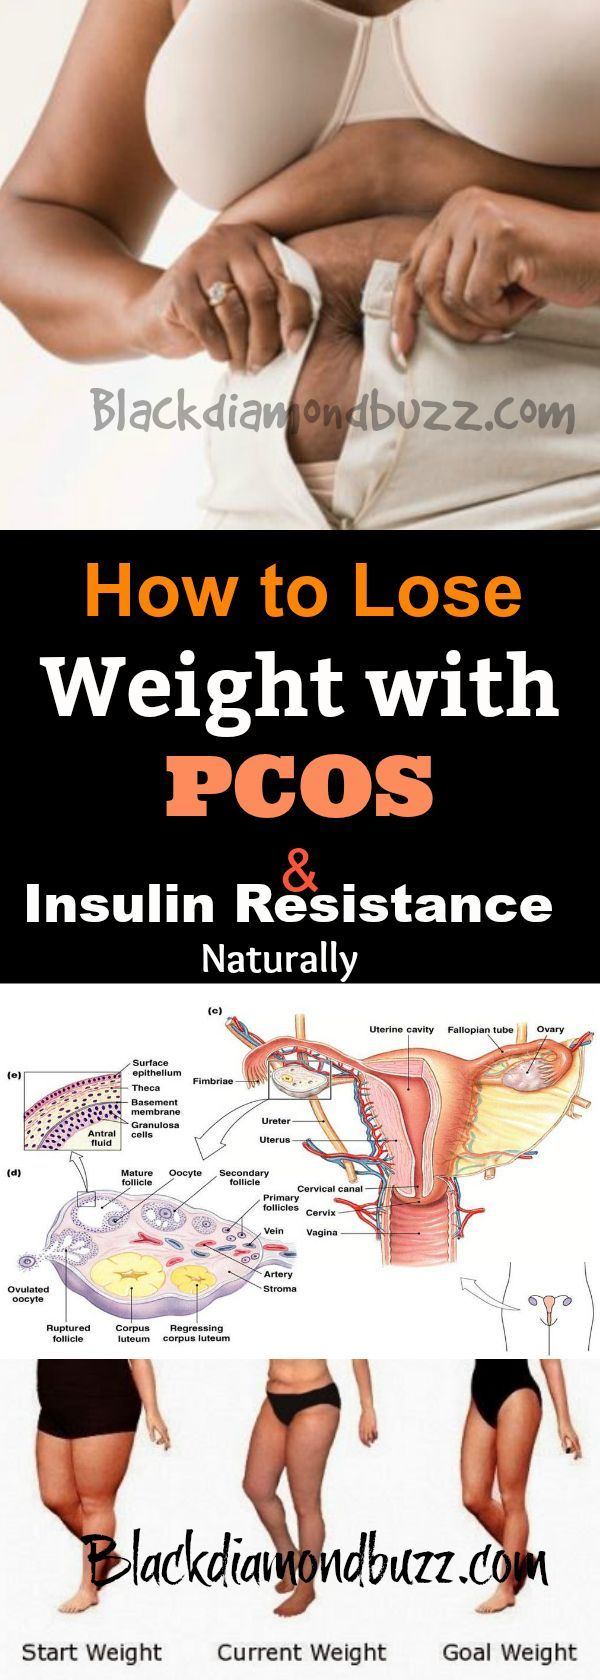 Are stuffering from PCOS (polycystic ovary syndrome) and you want to loss some weights? Then here are safe  ways on how to lose weight with PCOS and insulin resistance naturally at home.Included here are exercises and diets for PCOS you can try .